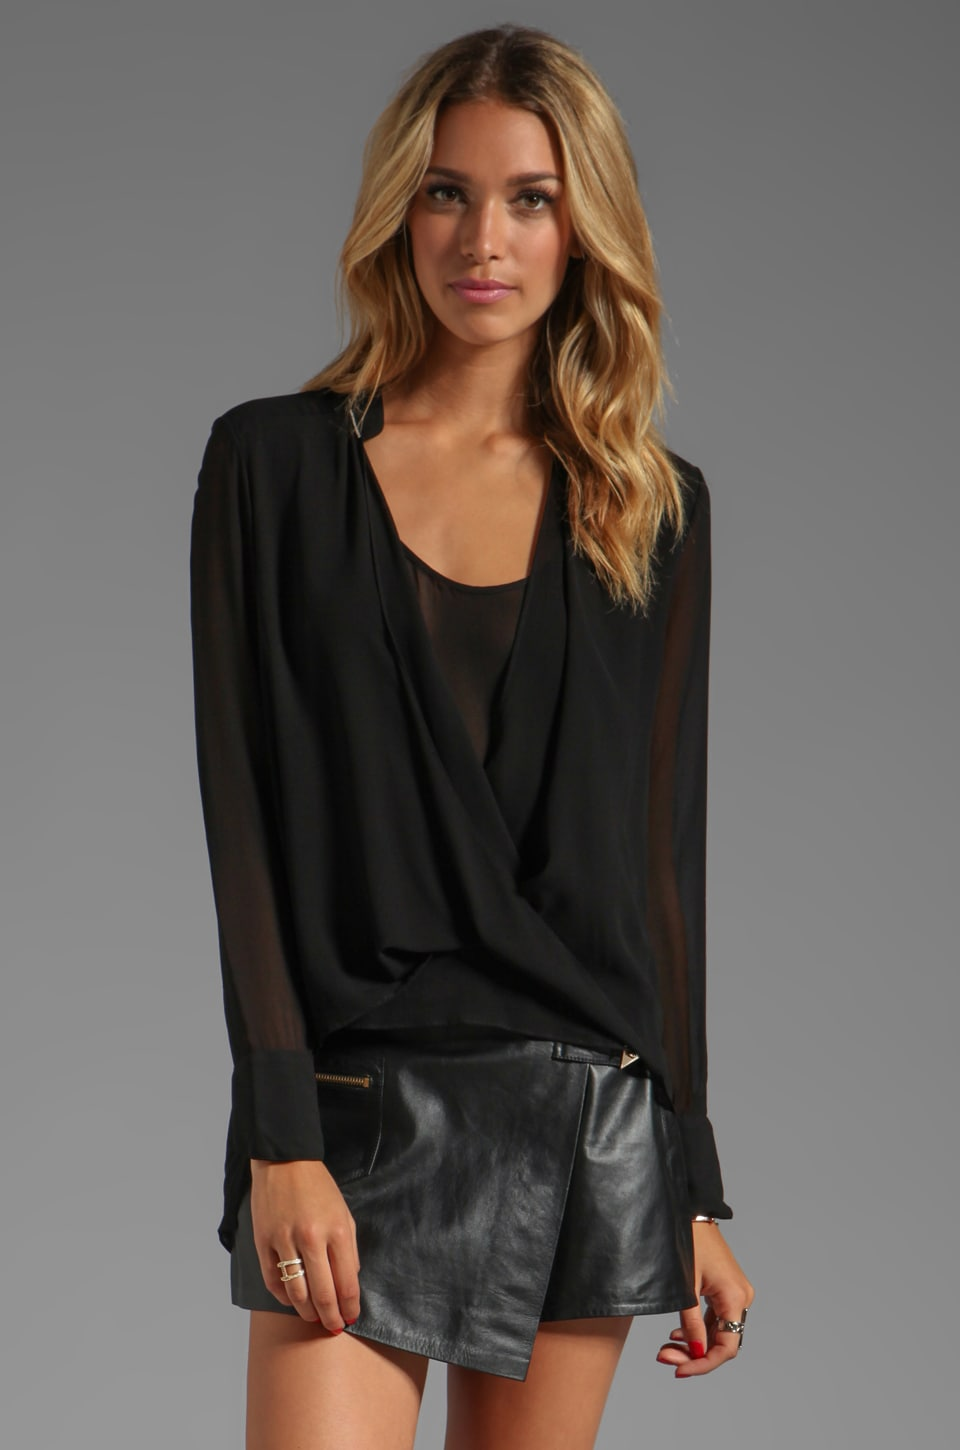 Wish Outshine Blouse in Black